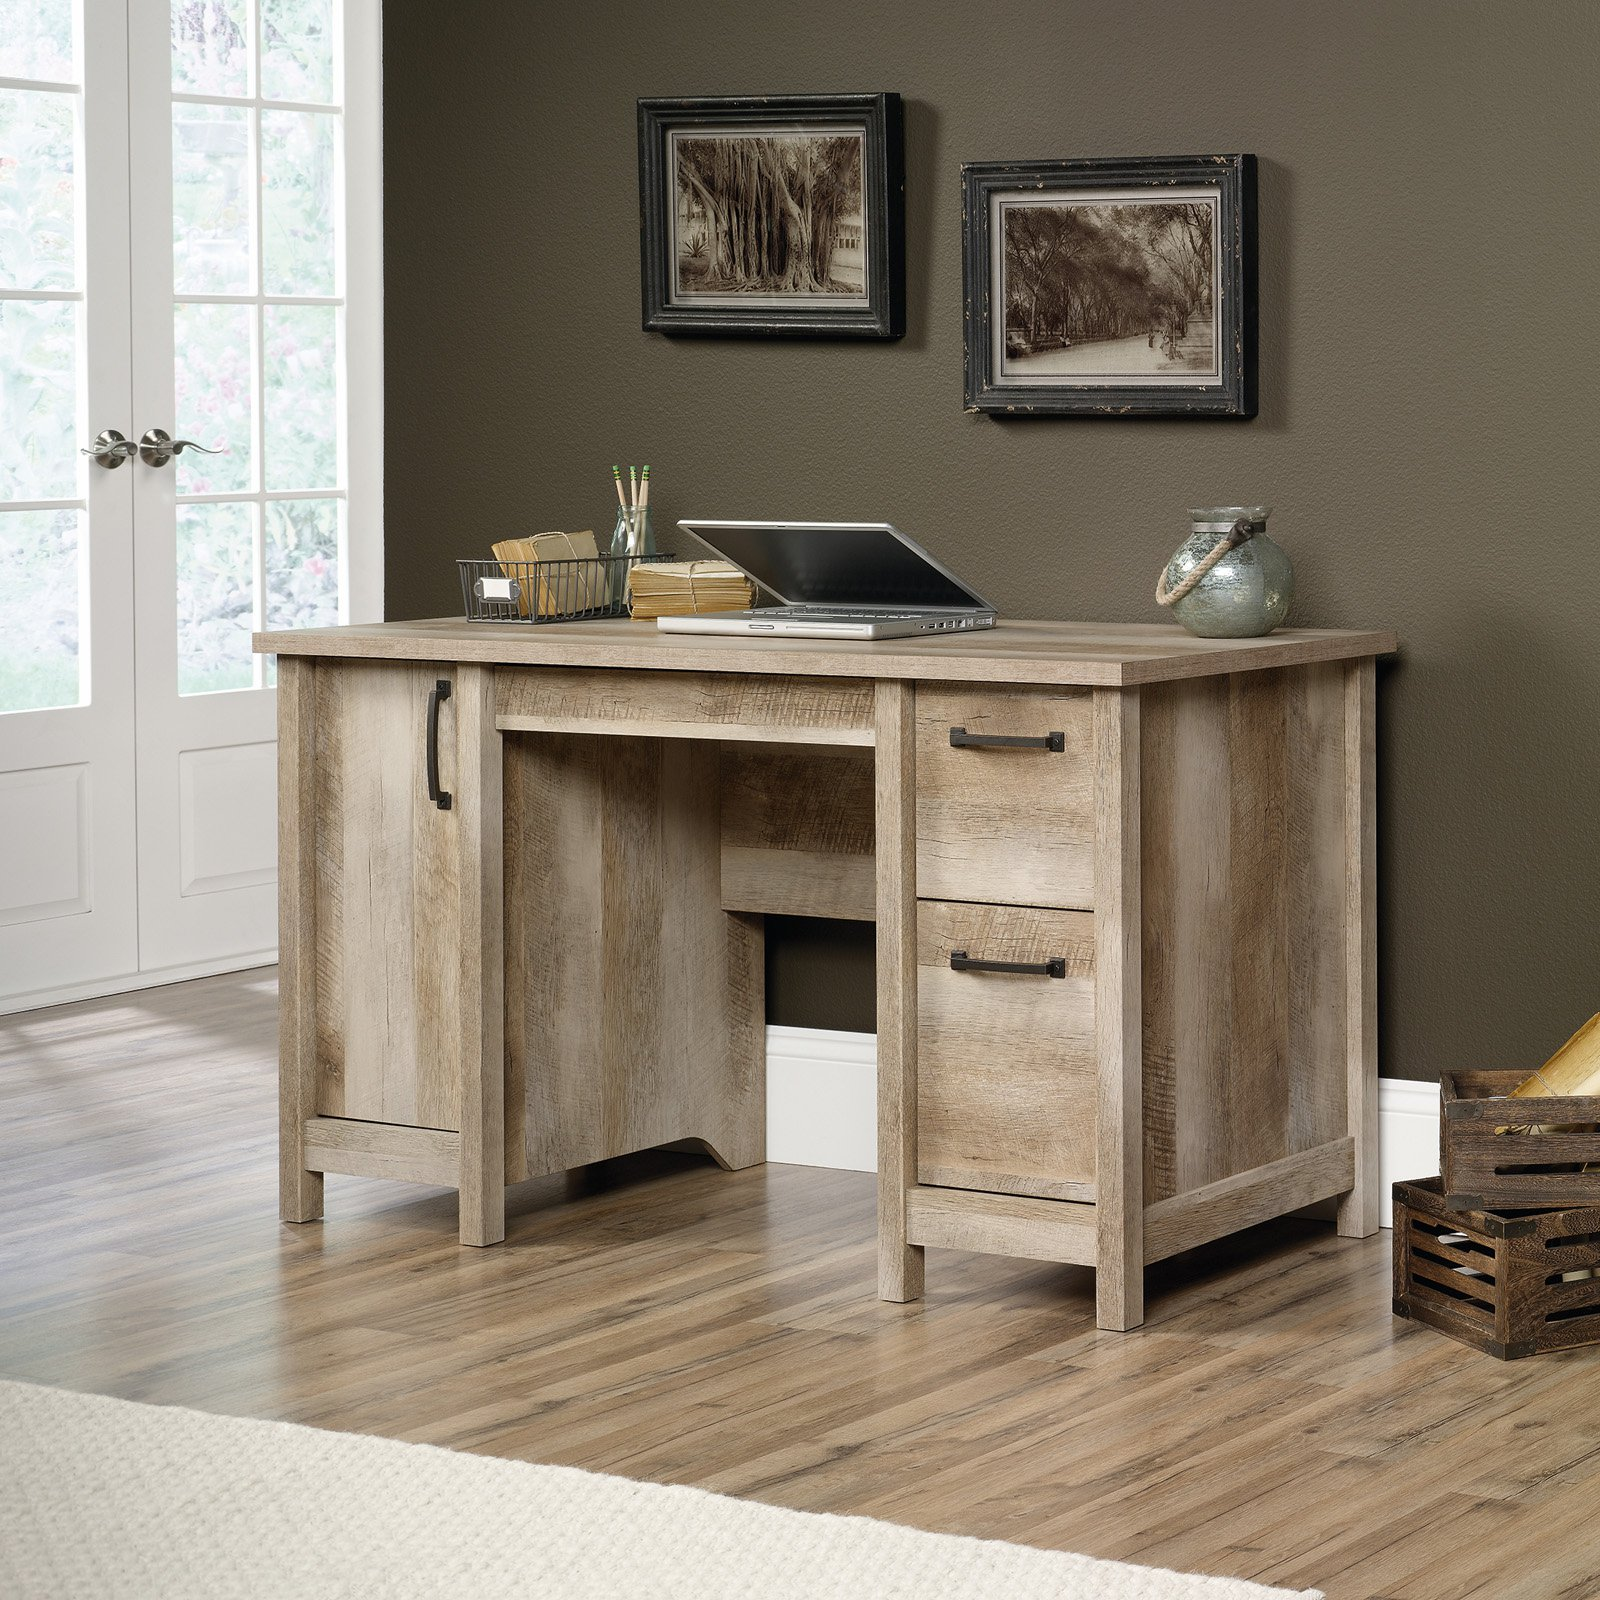 Sauder Cannery Bridge Contemporary Computer Desk, Lintel Oak Finish